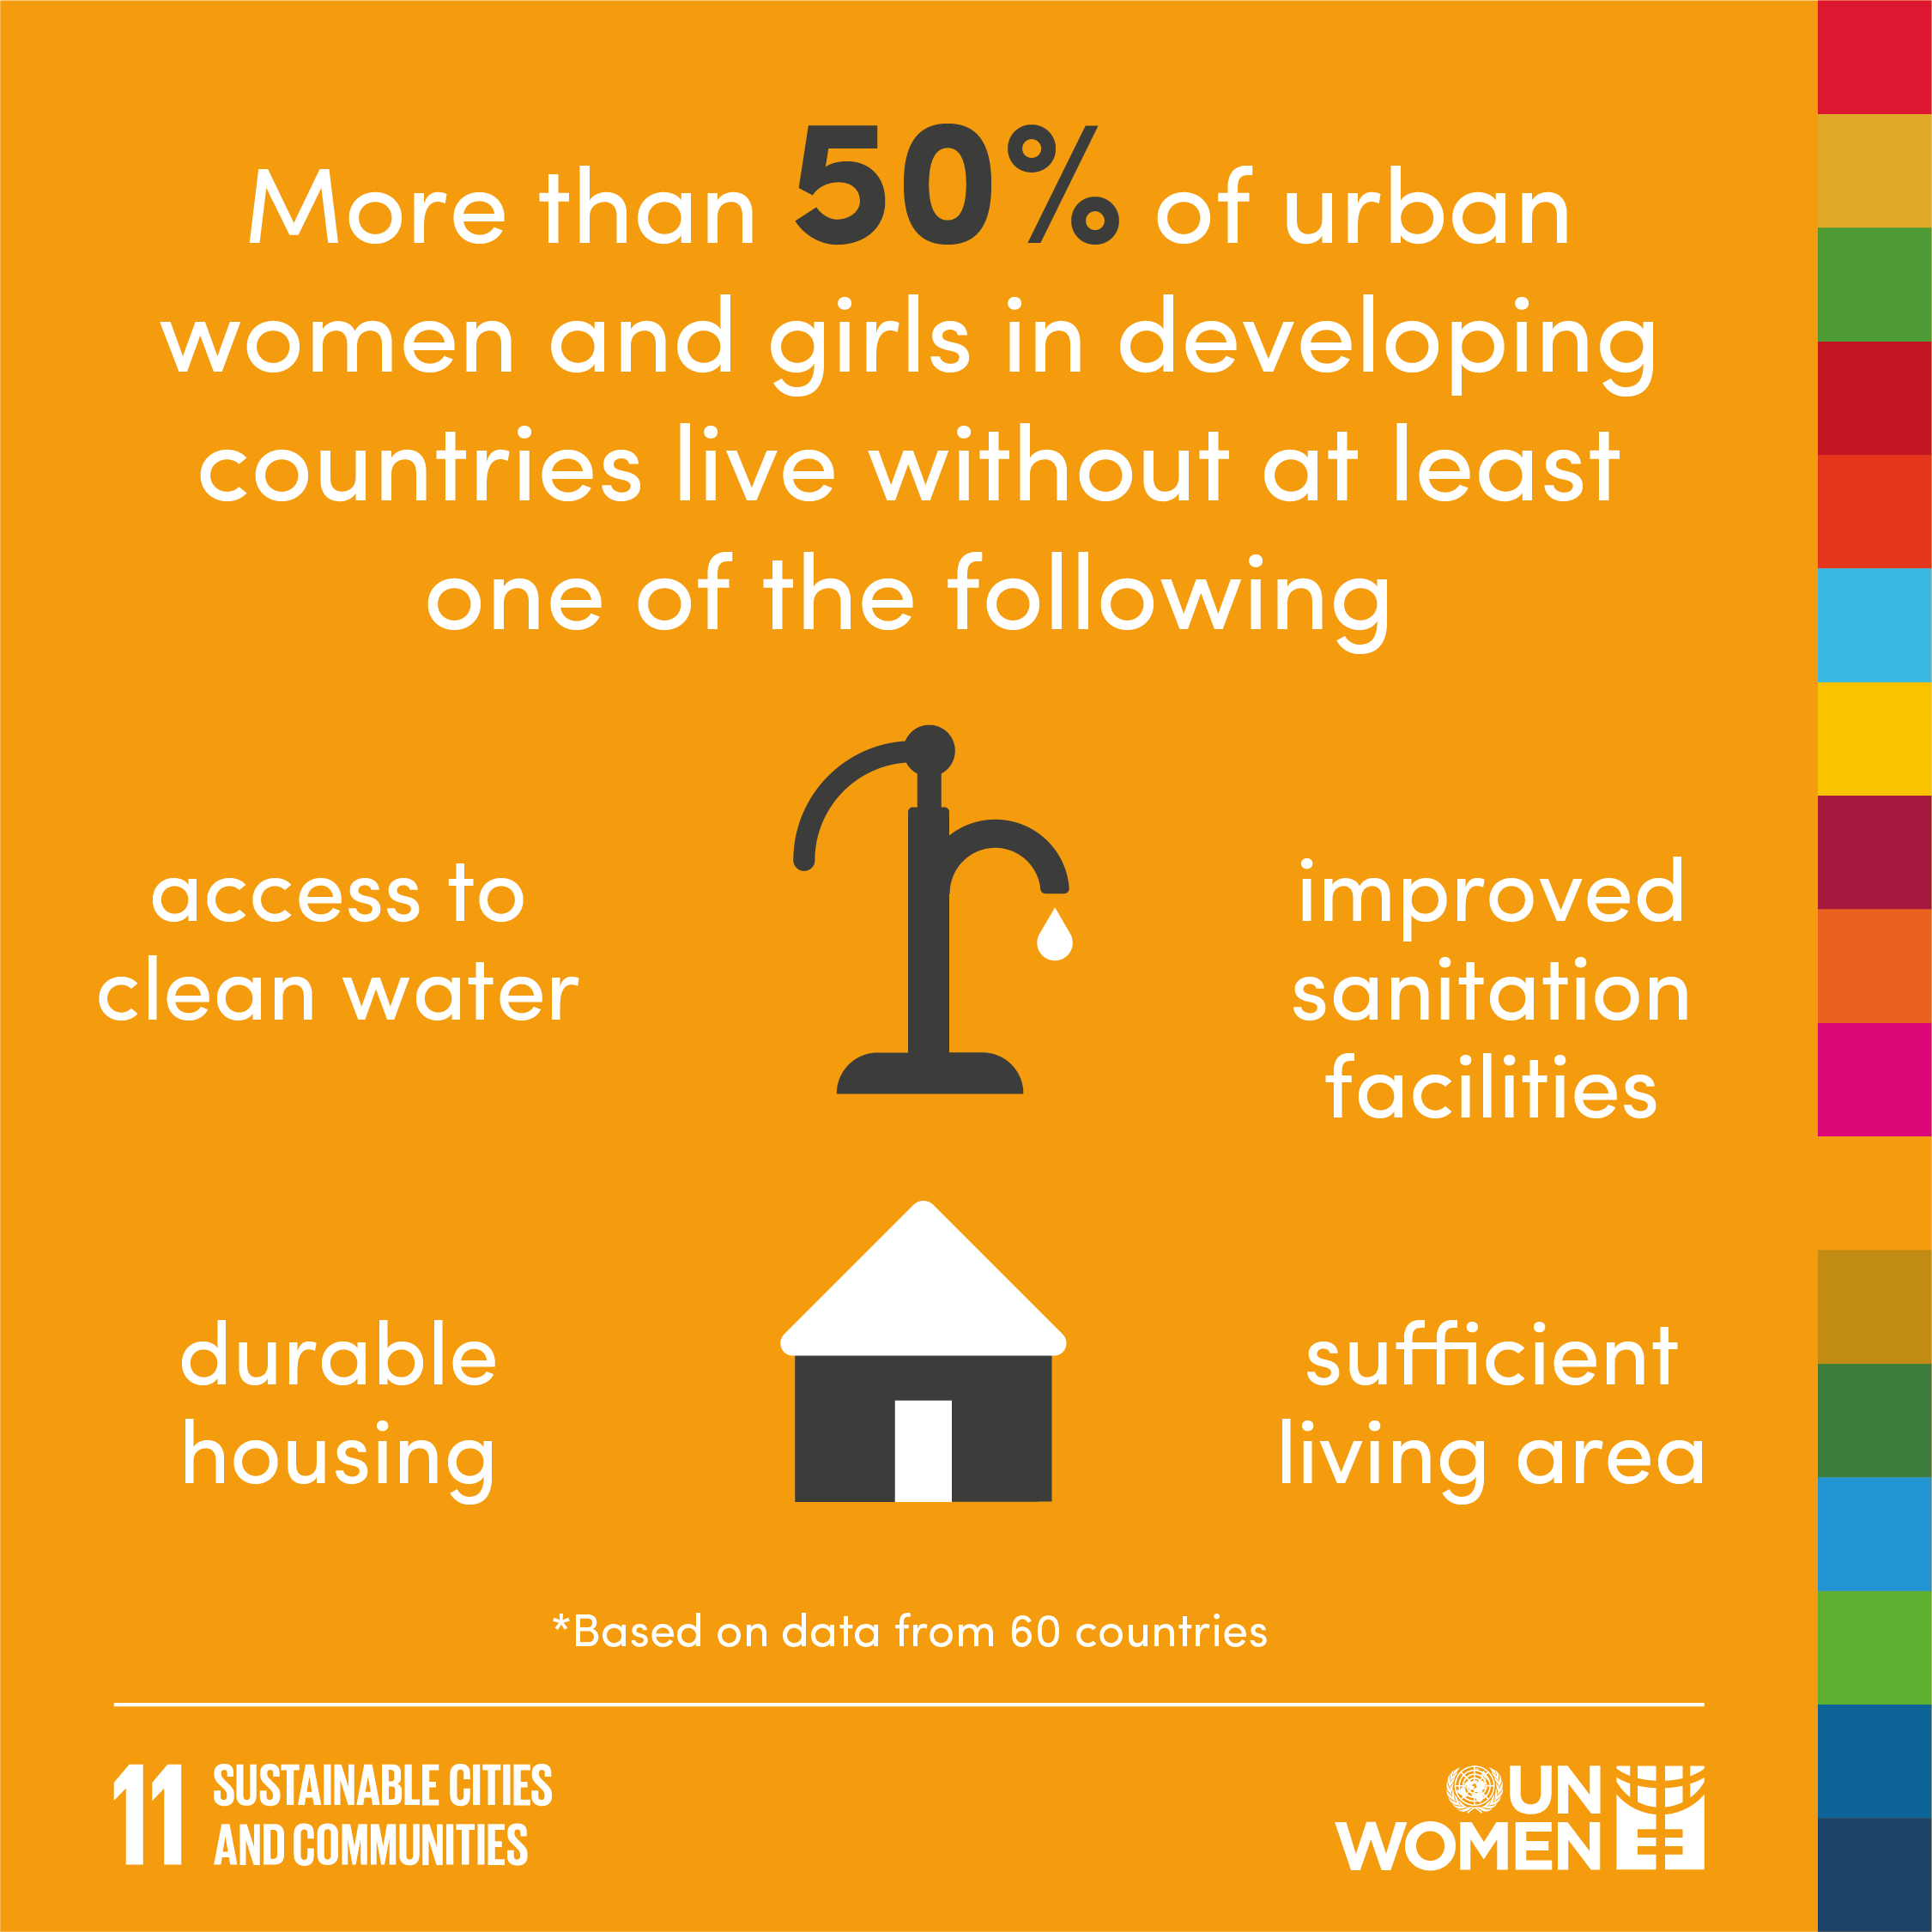 More than 50% of urban women and girls in developing countries live without at least one of the following: access to clean water; improved sanitation facilities; durable housing; sufficient living area